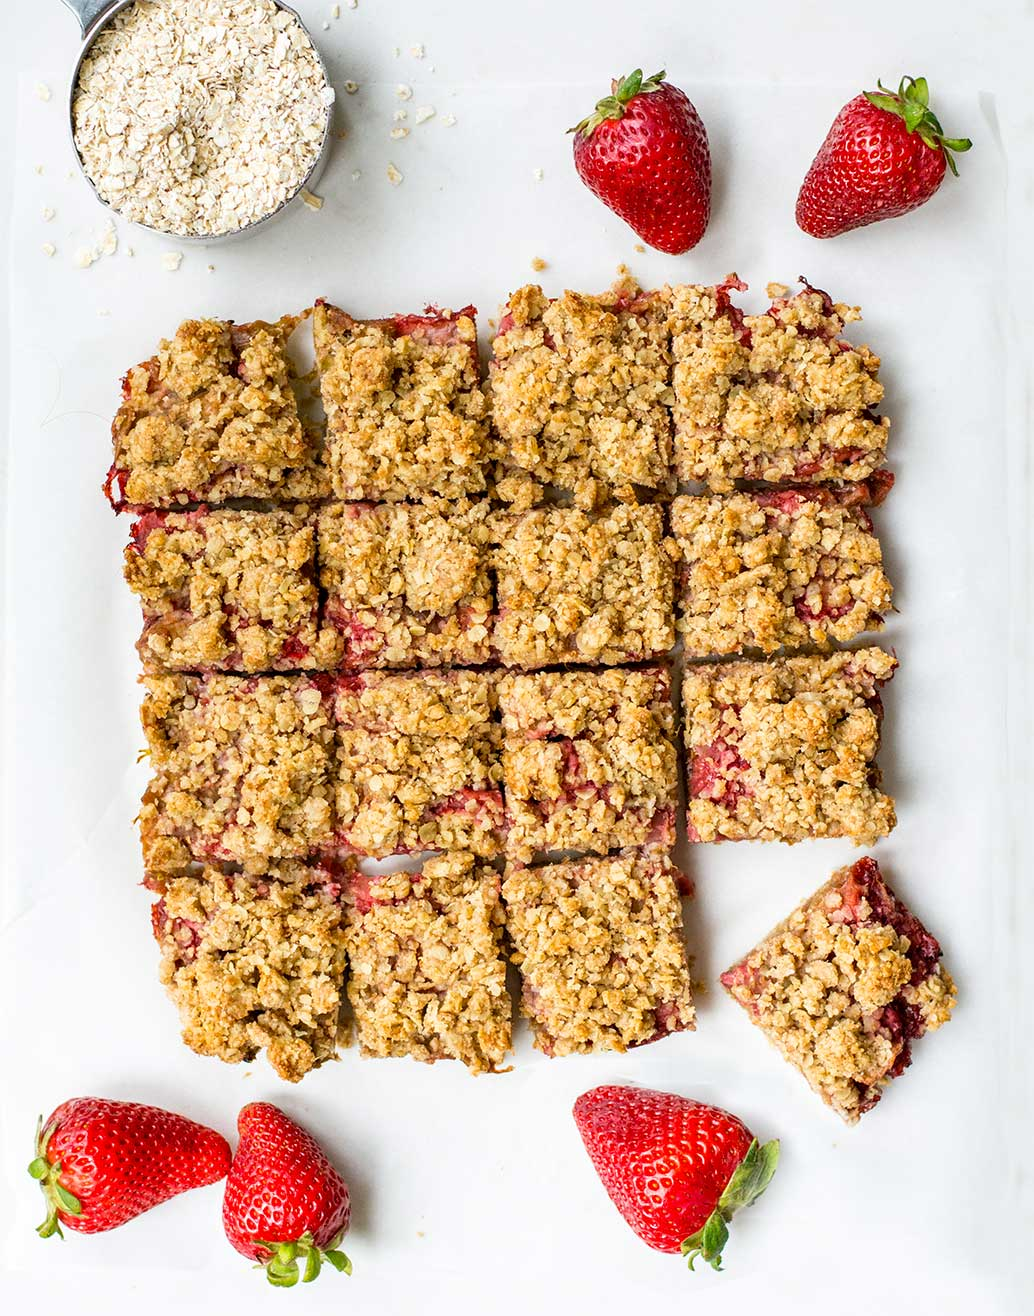 rhubarb bars top with strawberries